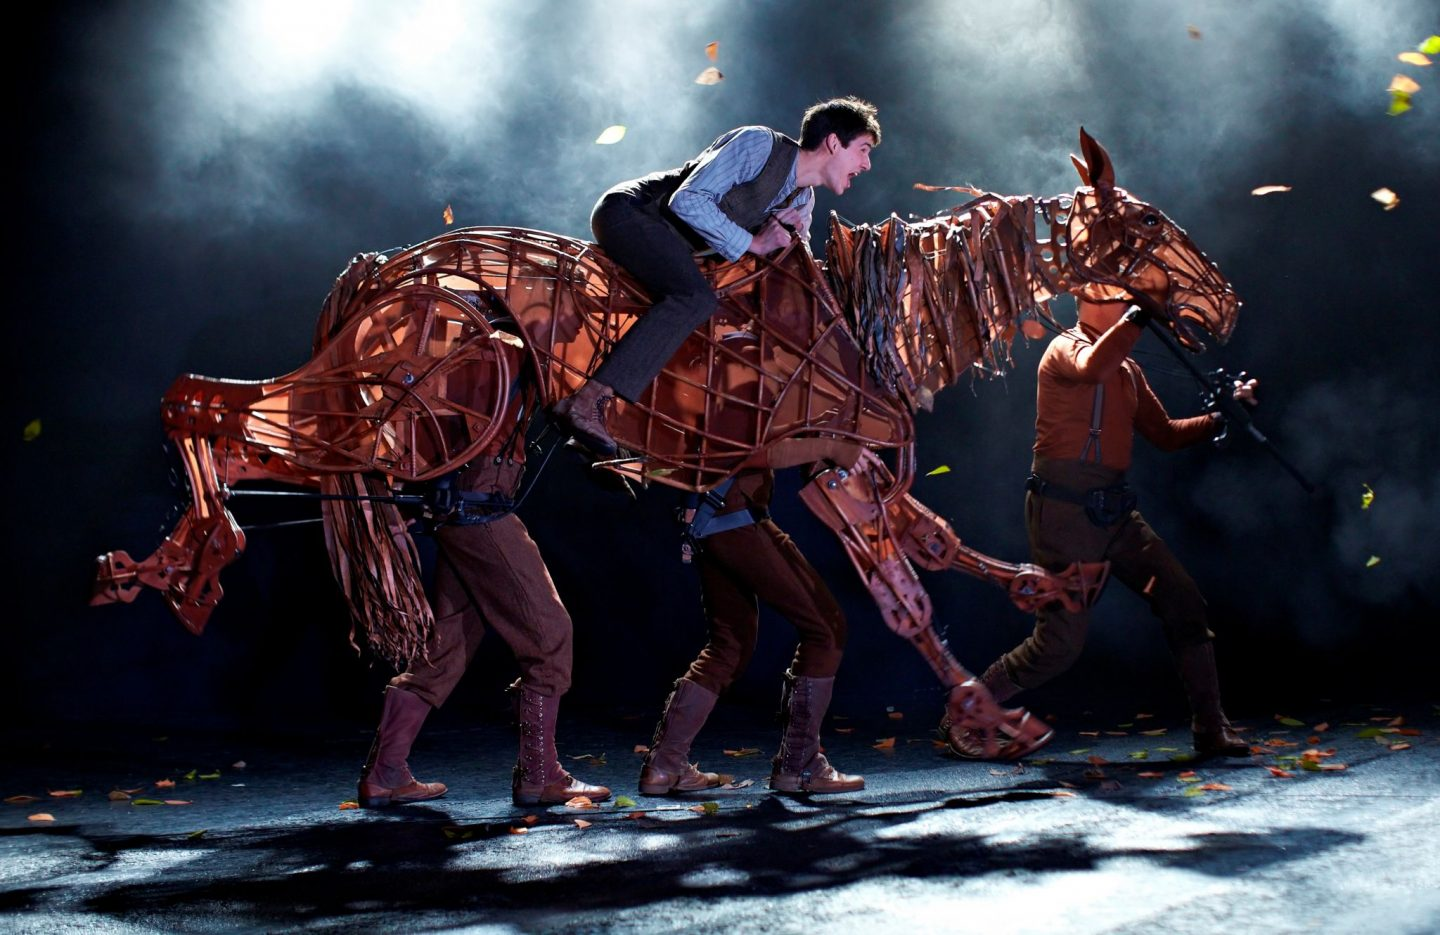 War Horse at the New London Theatre Photo by Brinkhoff Mögenburg 852-034